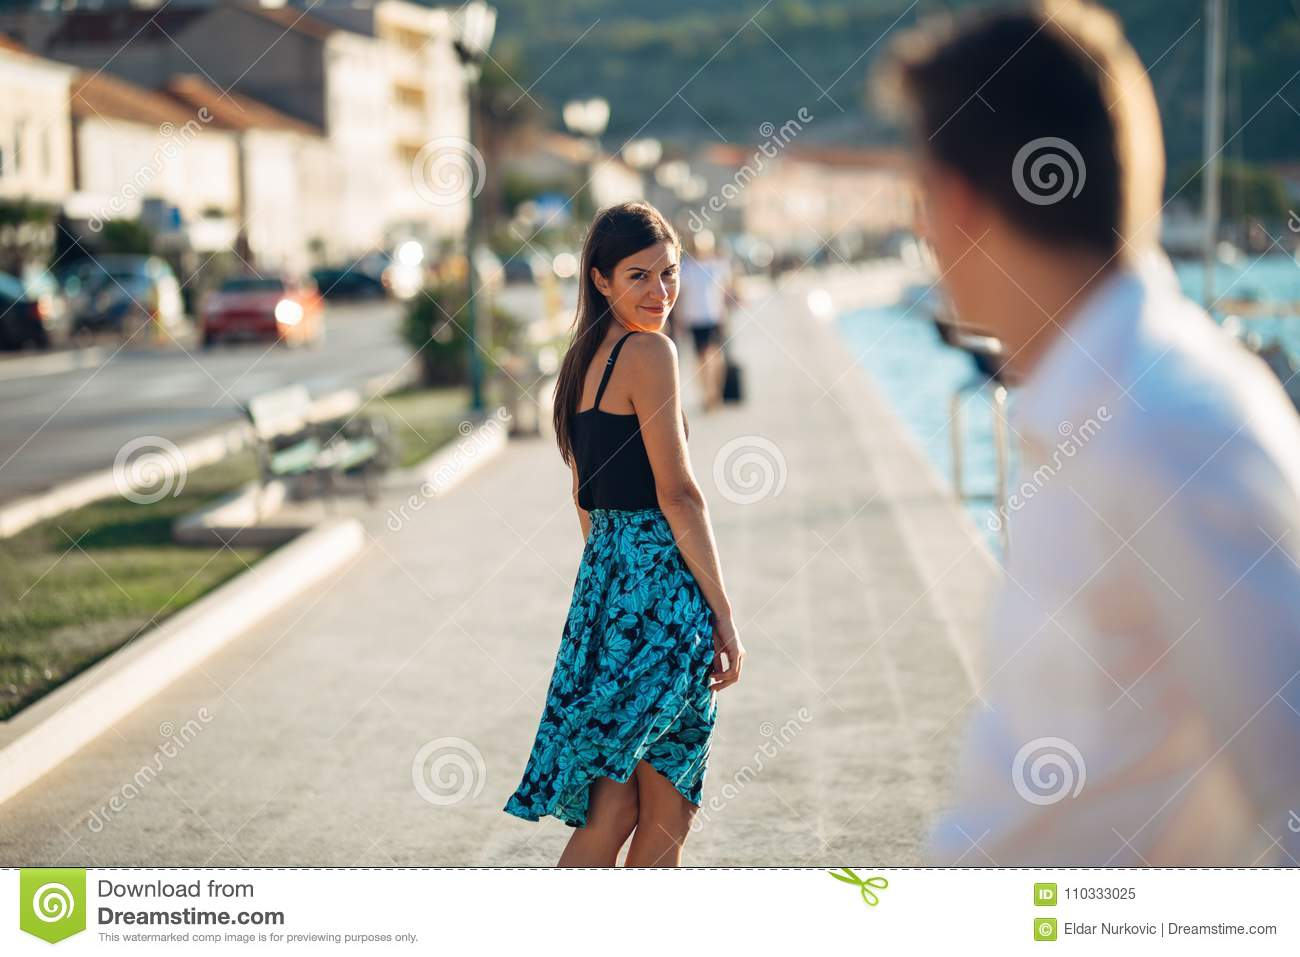 Young attractive woman flirting with a man on the street.Flirty smiling woman looking back on a handsome man.Female attraction